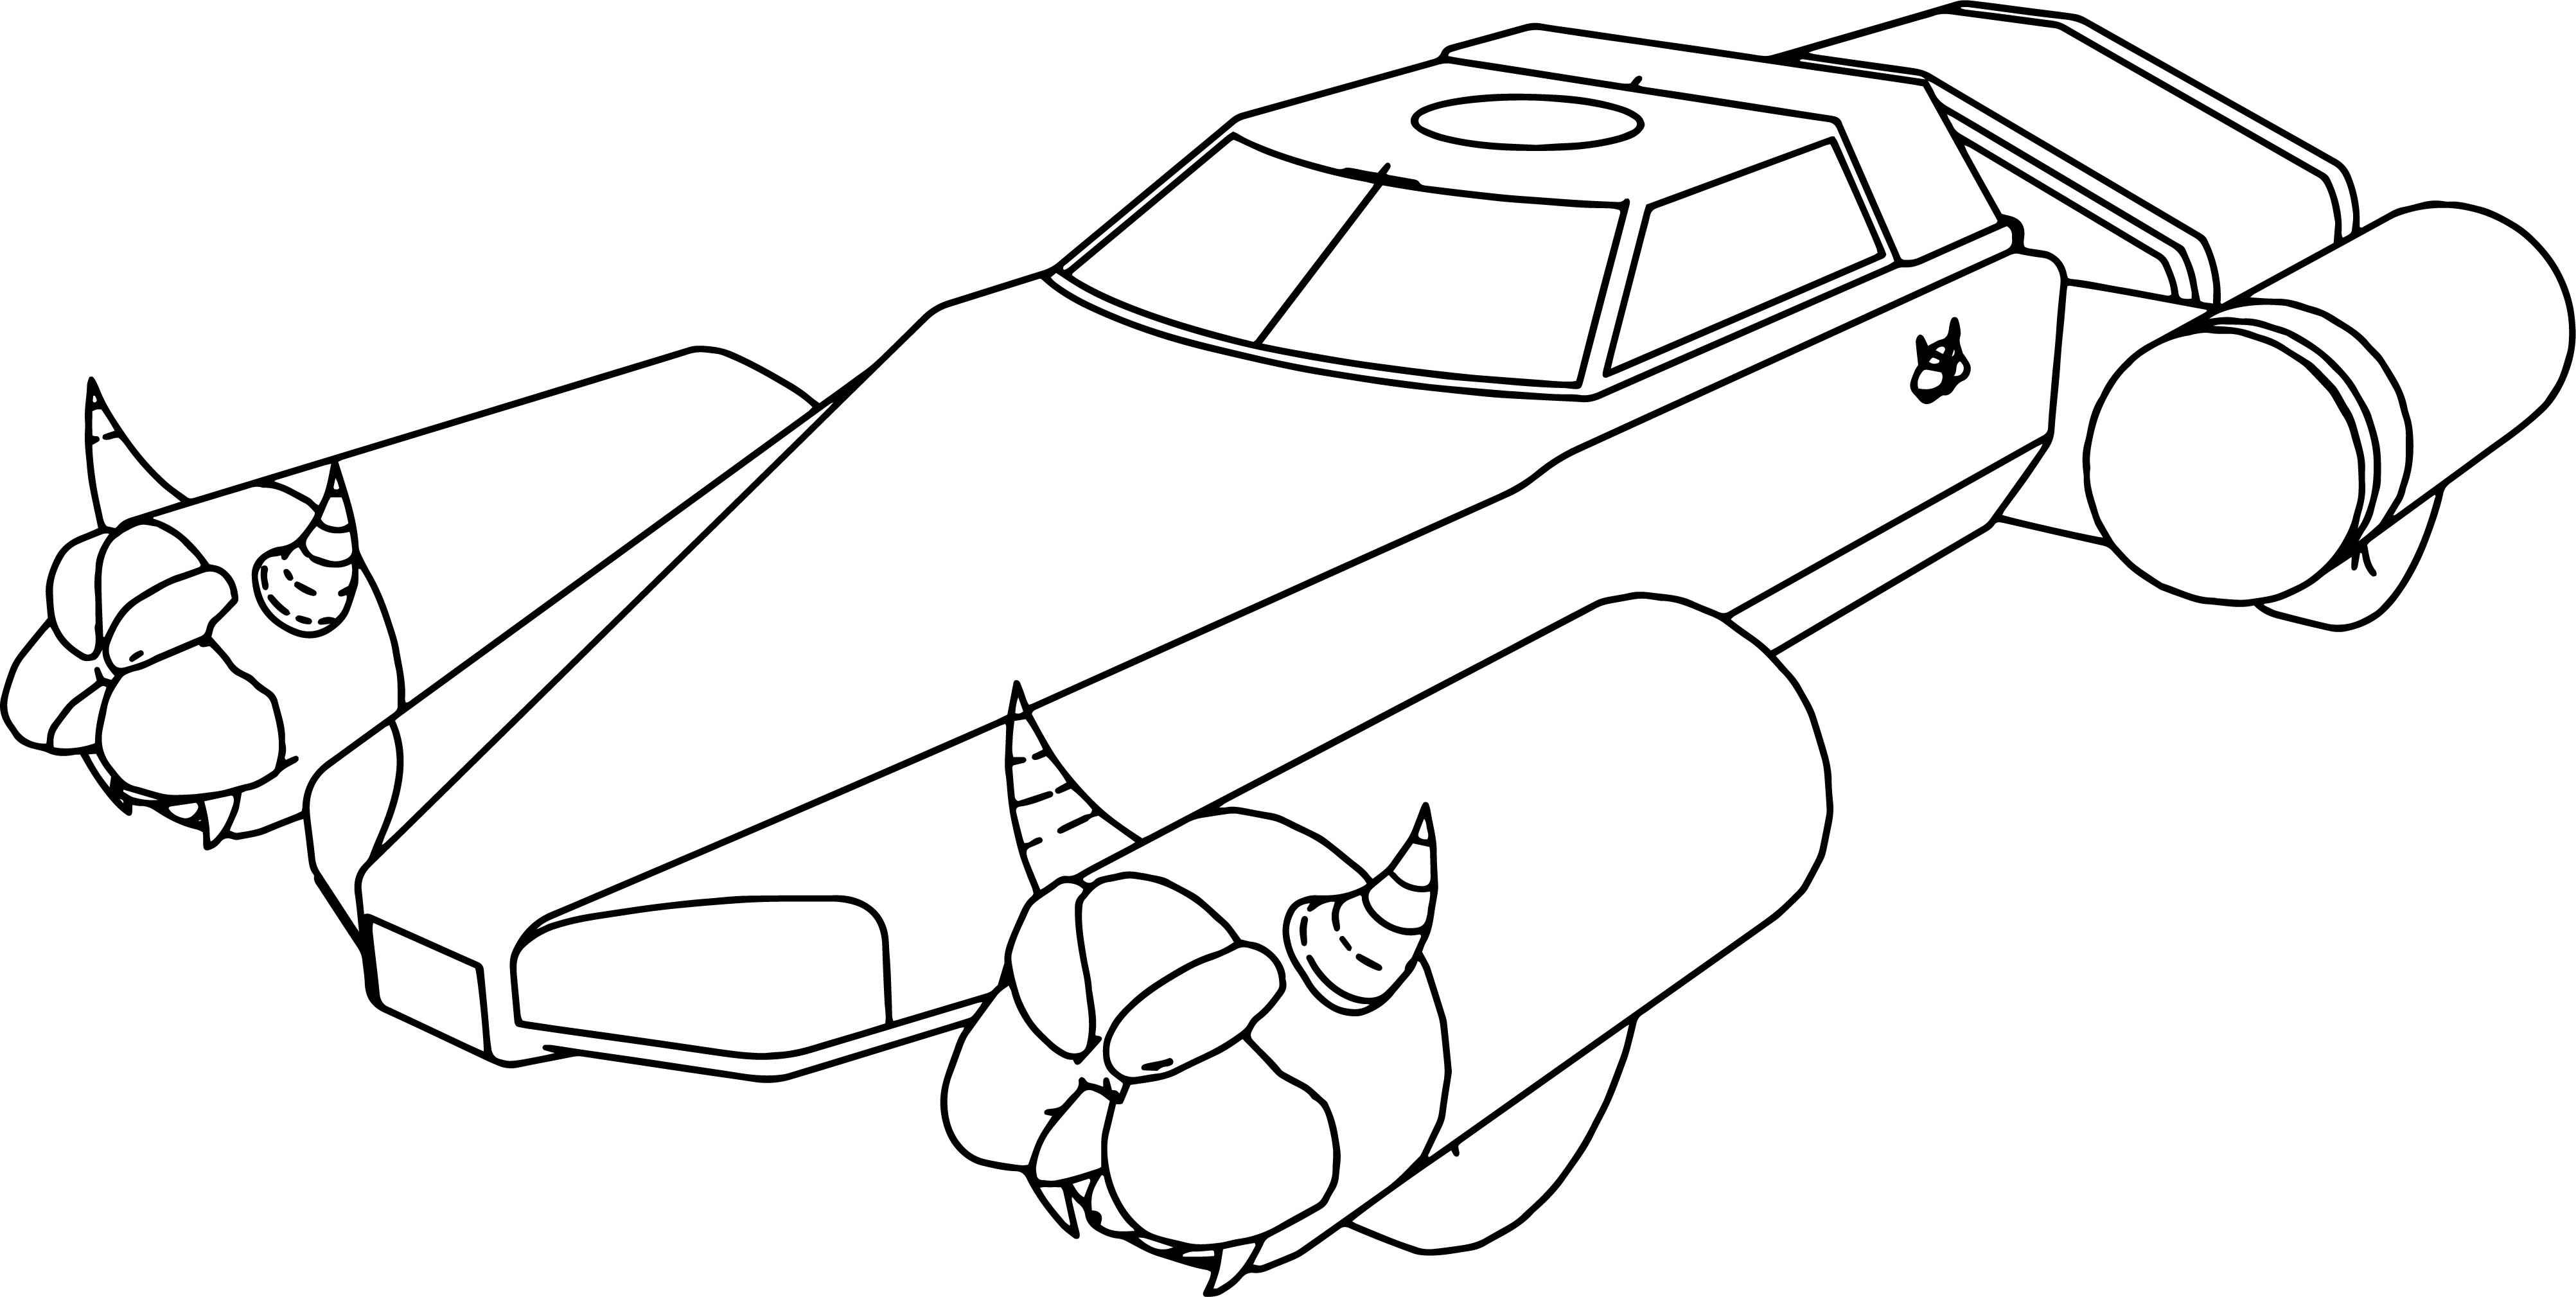 new york jets coloring pages new york jets coloring pages at getcoloringscom free pages new york coloring jets